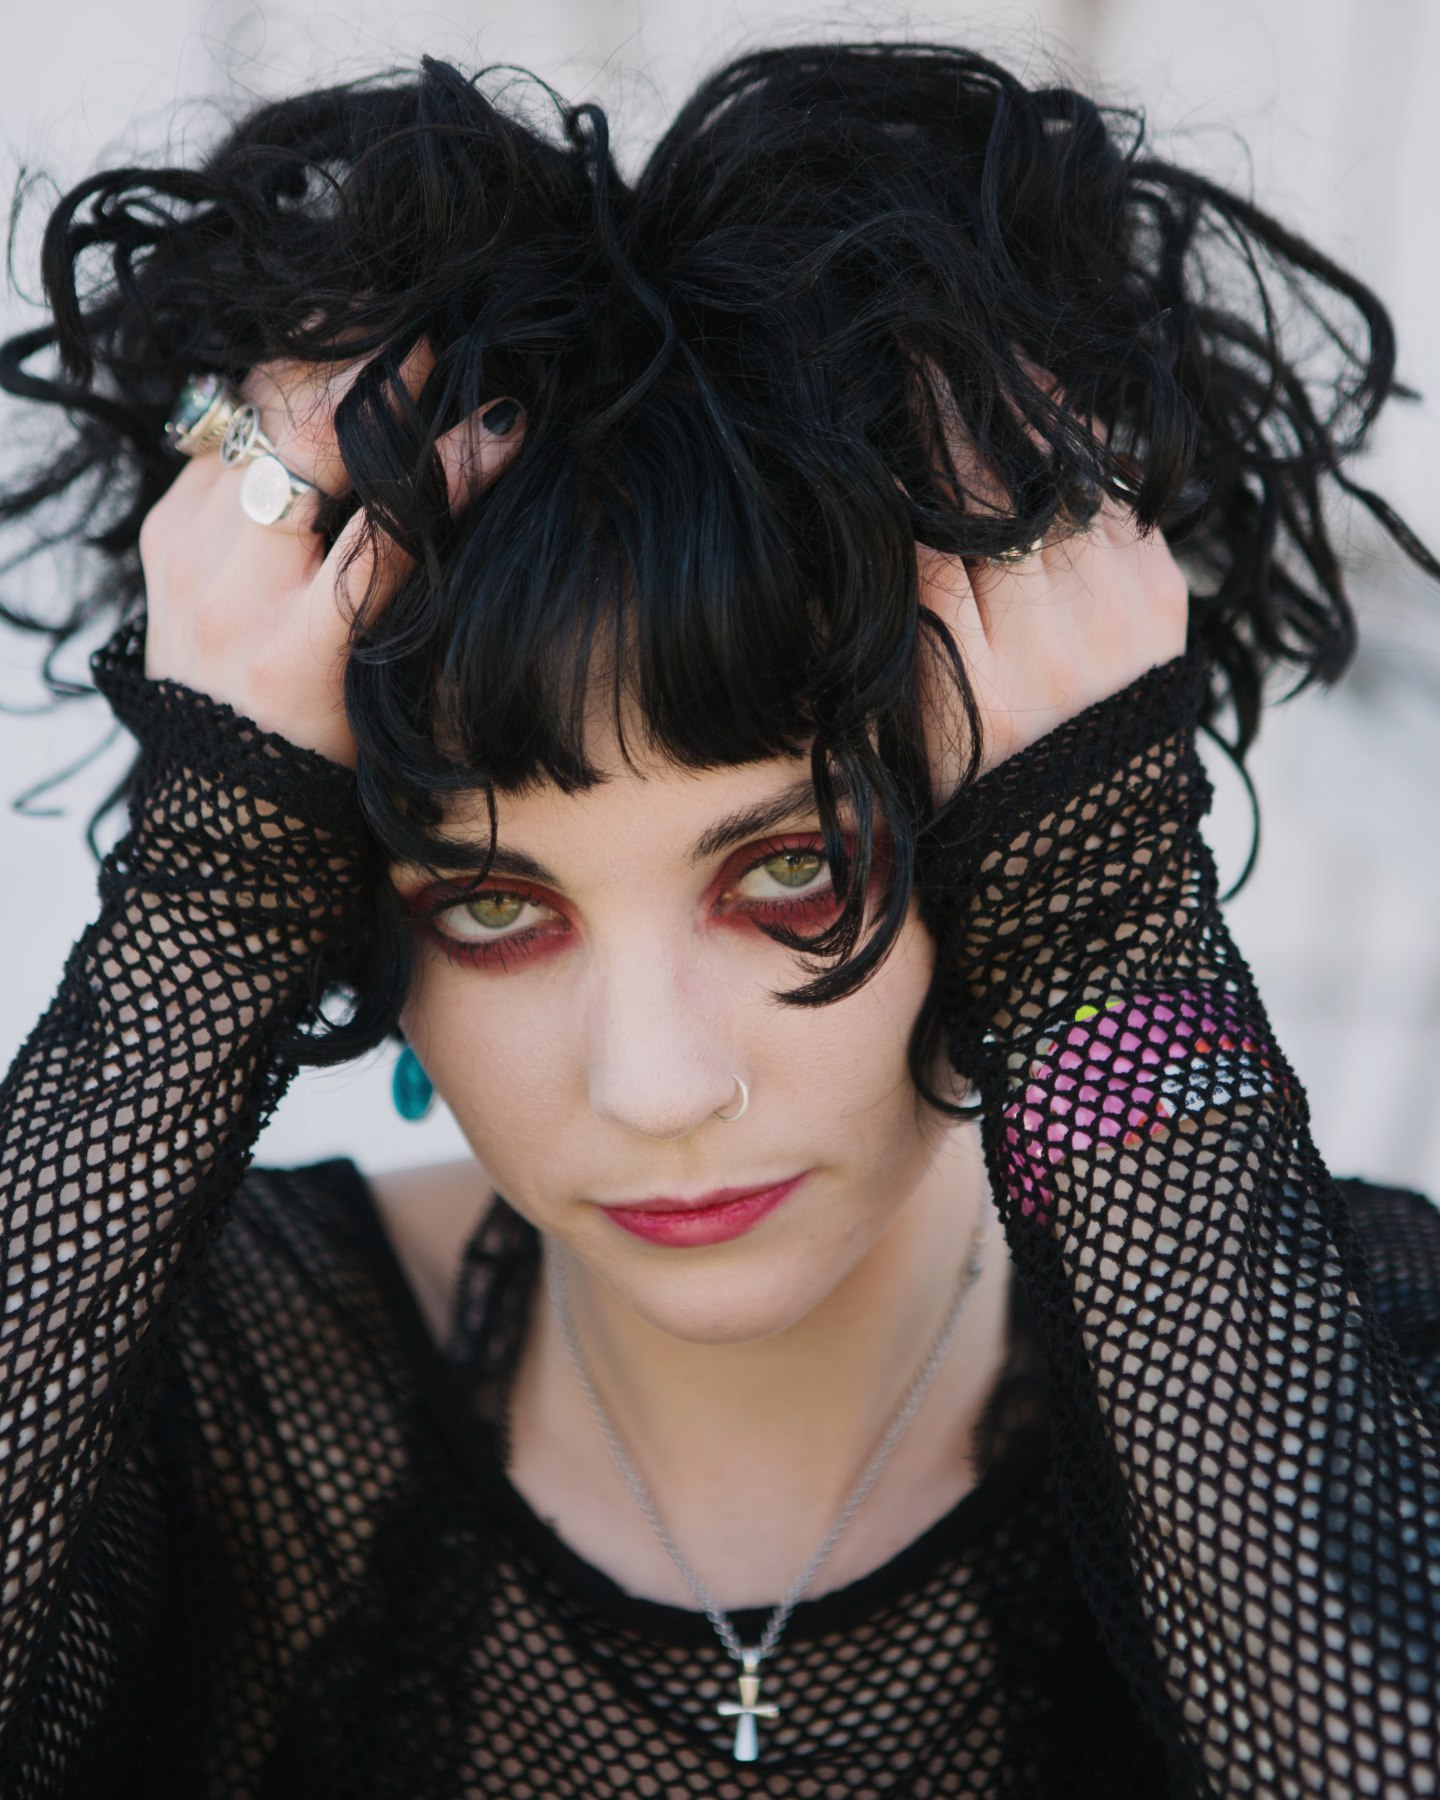 How to stay goth in the summer